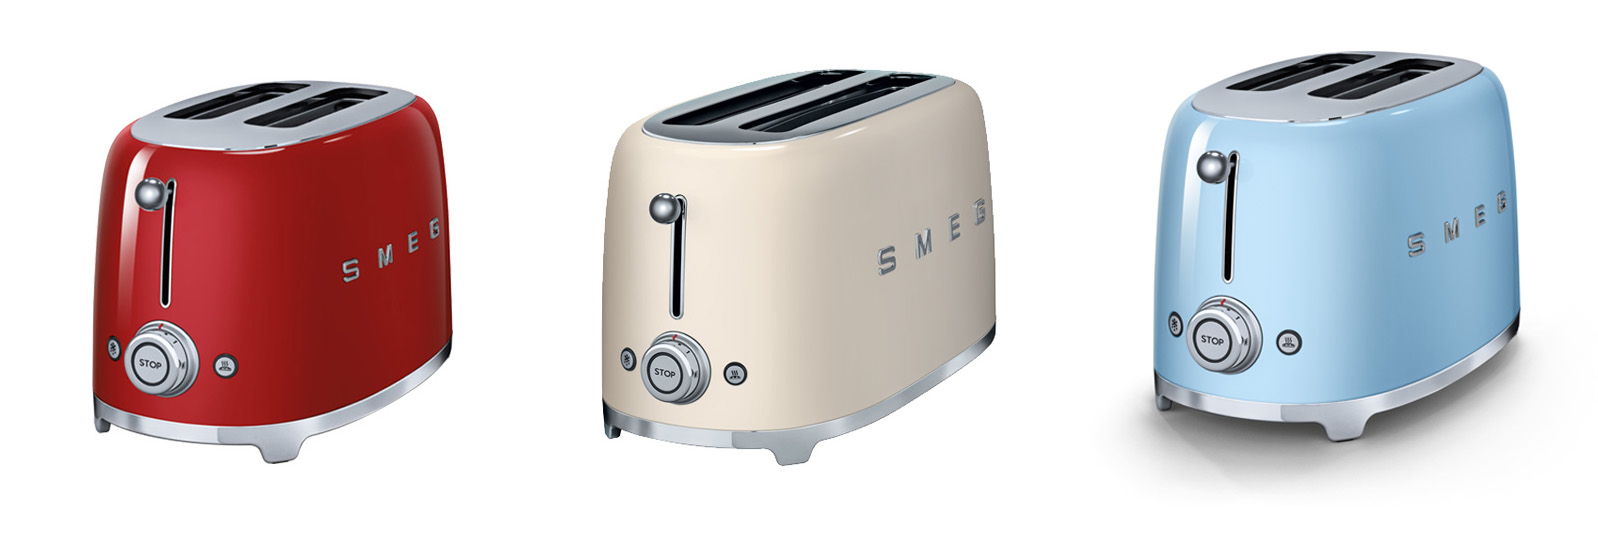 SMEG Launches Stylish Small Appliances  Welcome to Kitchen Studio of